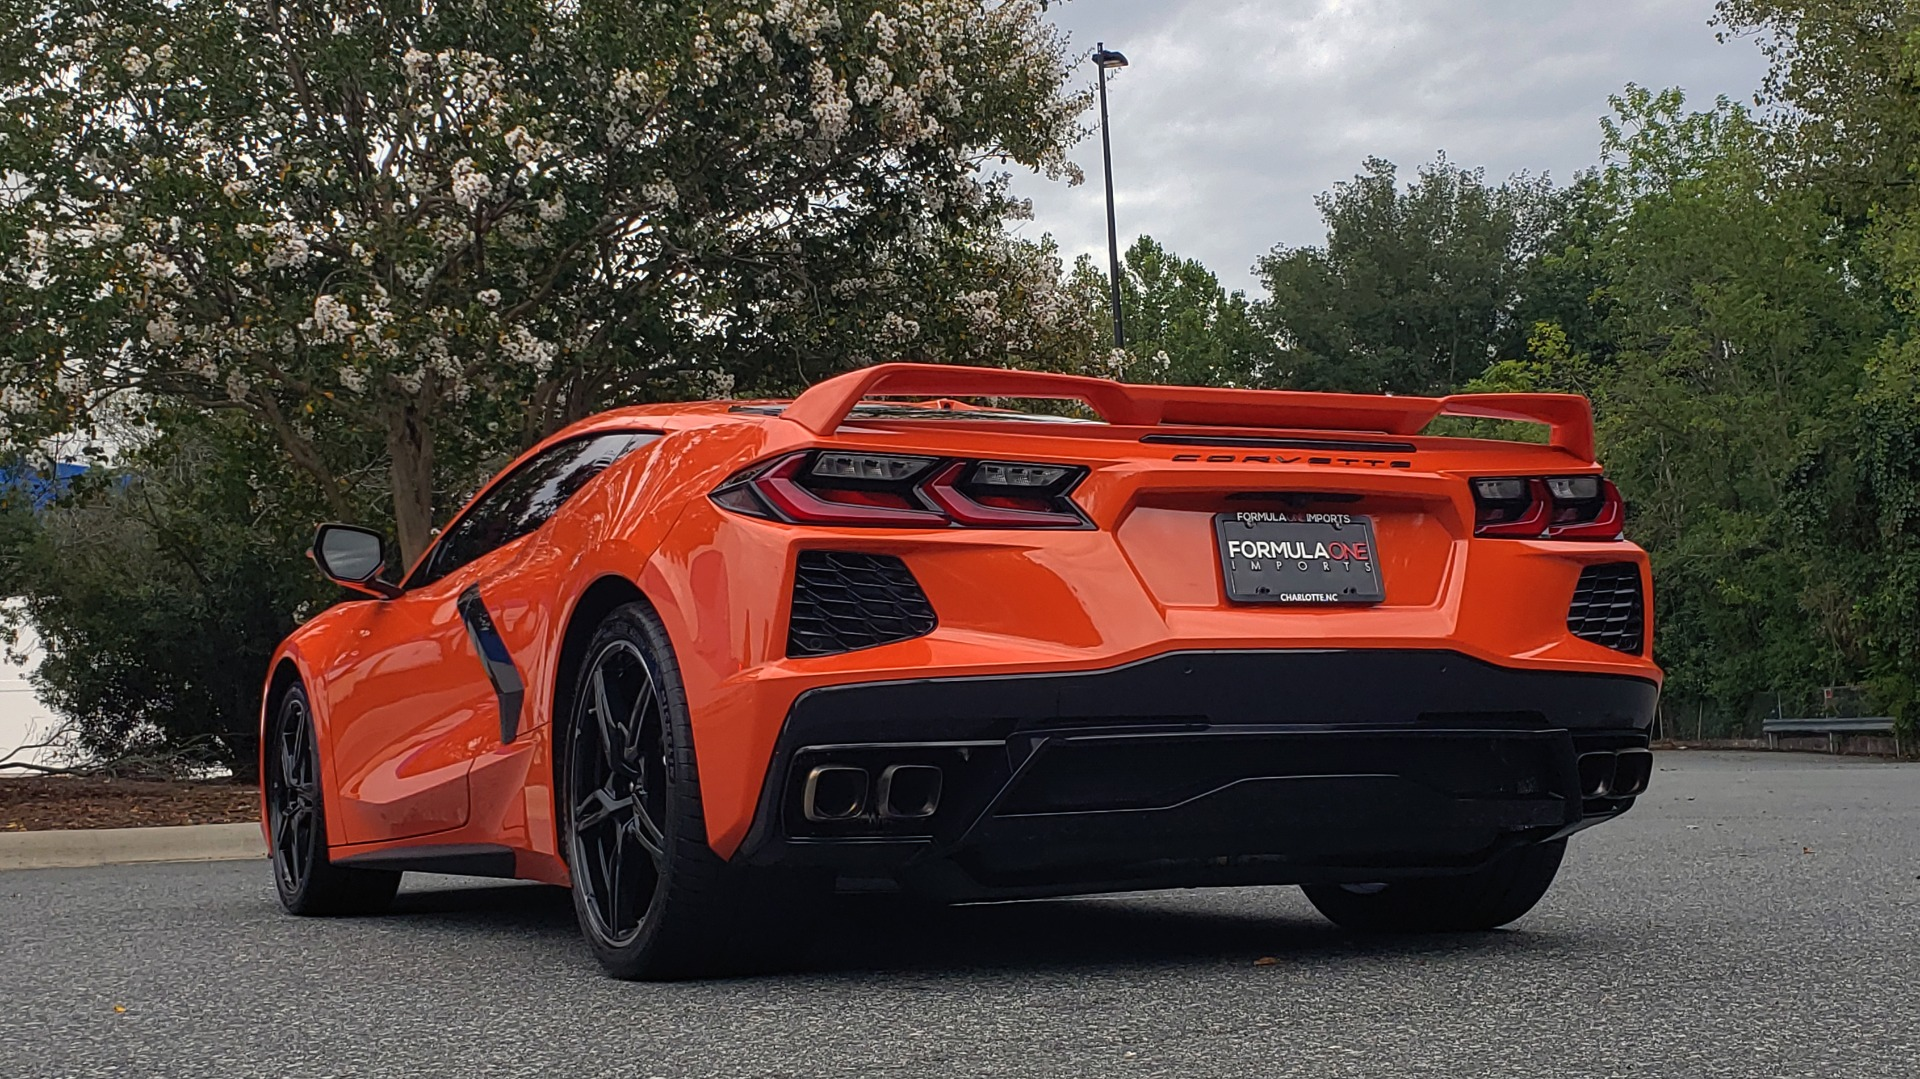 Used 2020 Chevrolet CORVETTE C8 STINGRAY 2LT / 6.2L V8 / 8-SPD AUTO / NAV / BOSE / REARVIEW / DATA RECOR for sale Sold at Formula Imports in Charlotte NC 28227 5